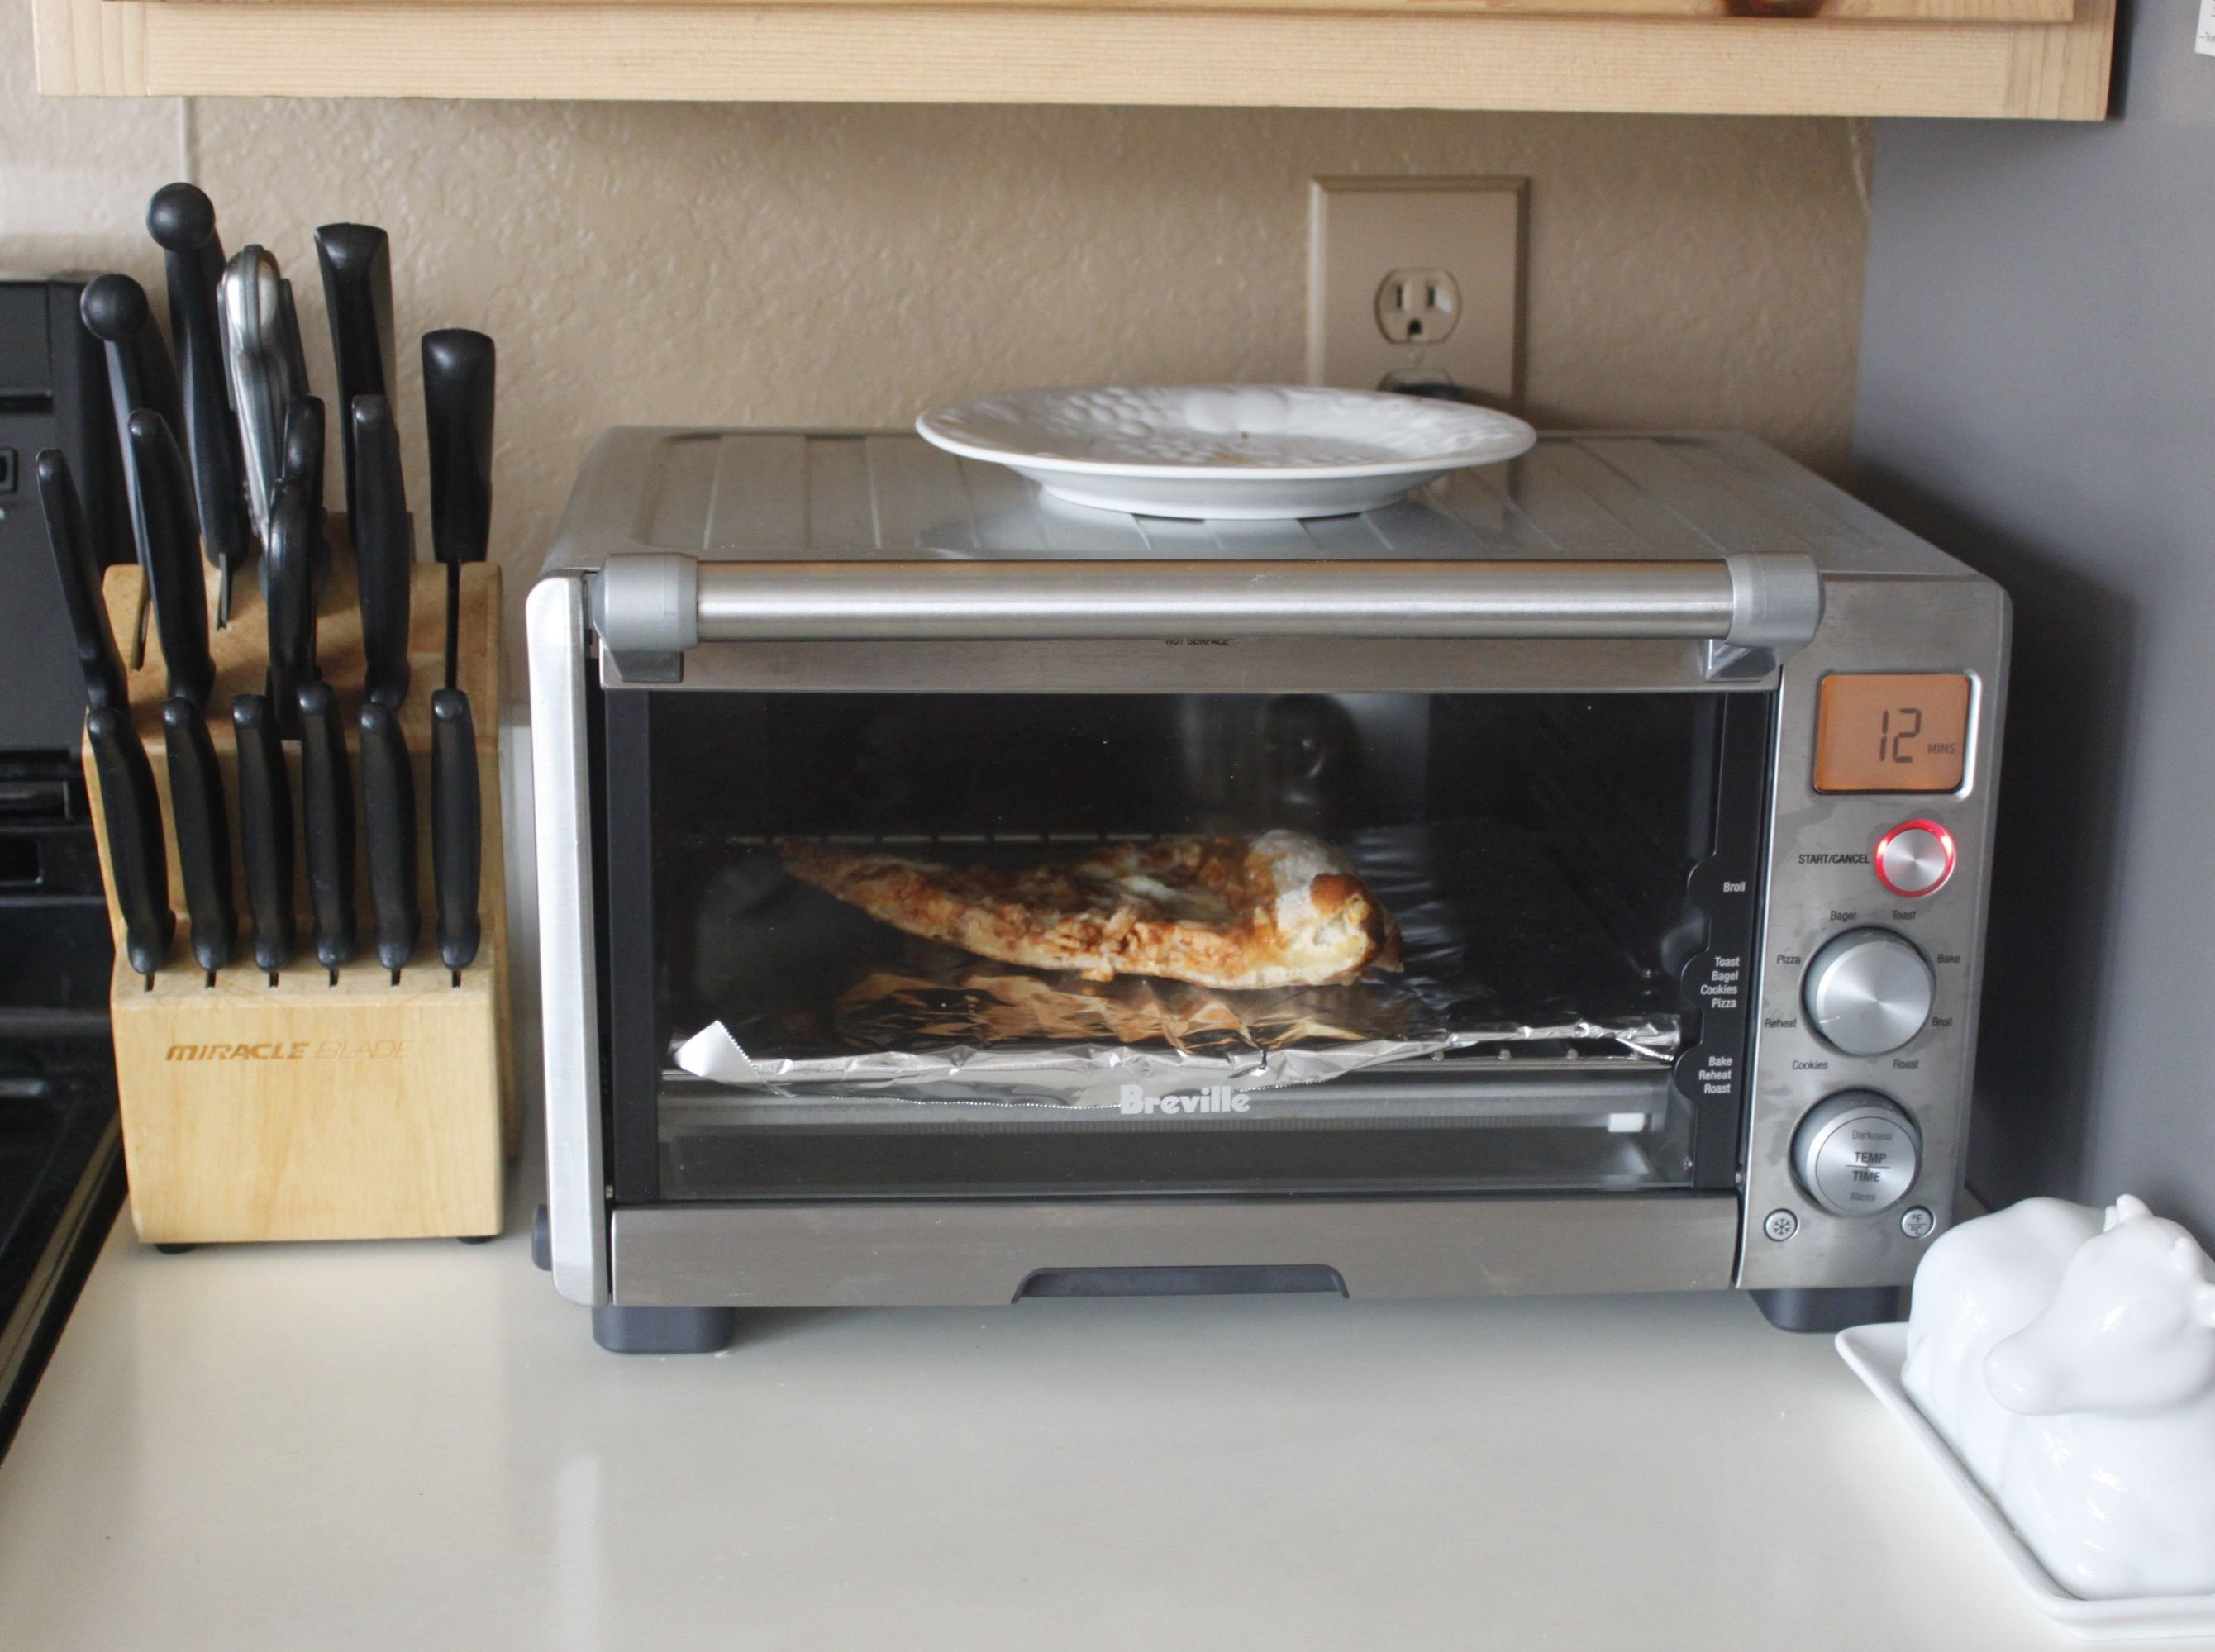 Breville 650xl toaster oven review for Breville toaster oven